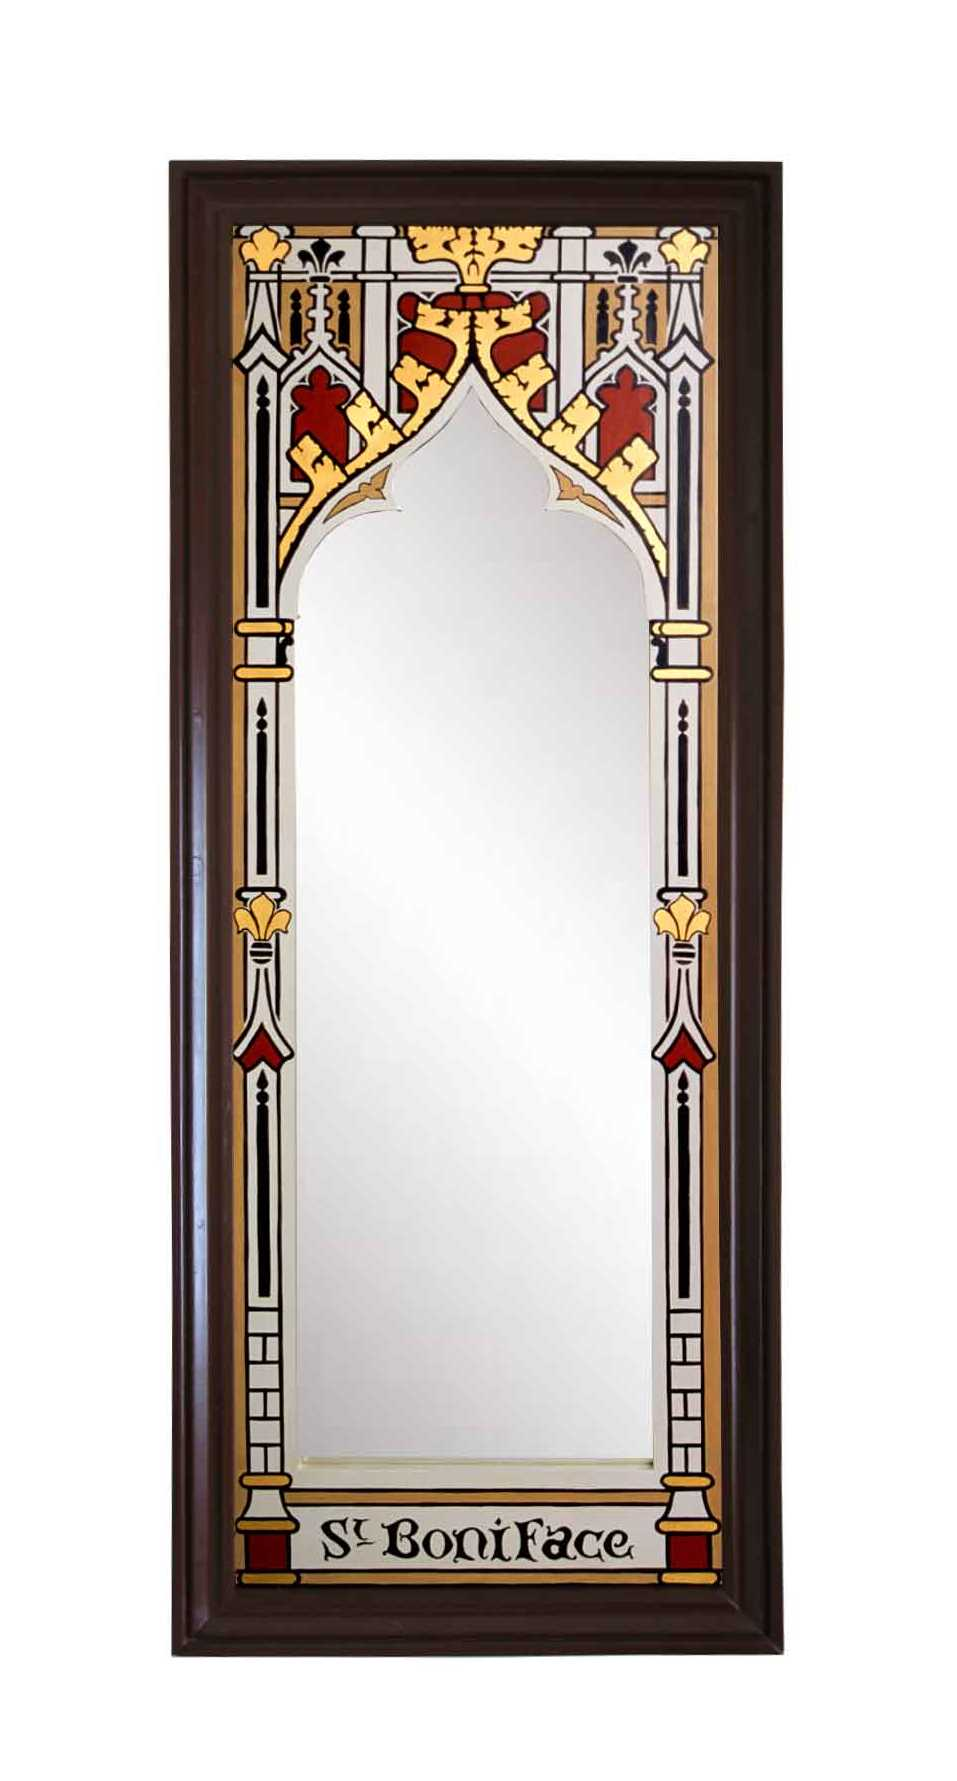 New gothic revival mirrors mirror frames carved painted gilded new wm burges gothic revival style painted gilded gold mirror frame amipublicfo Gallery